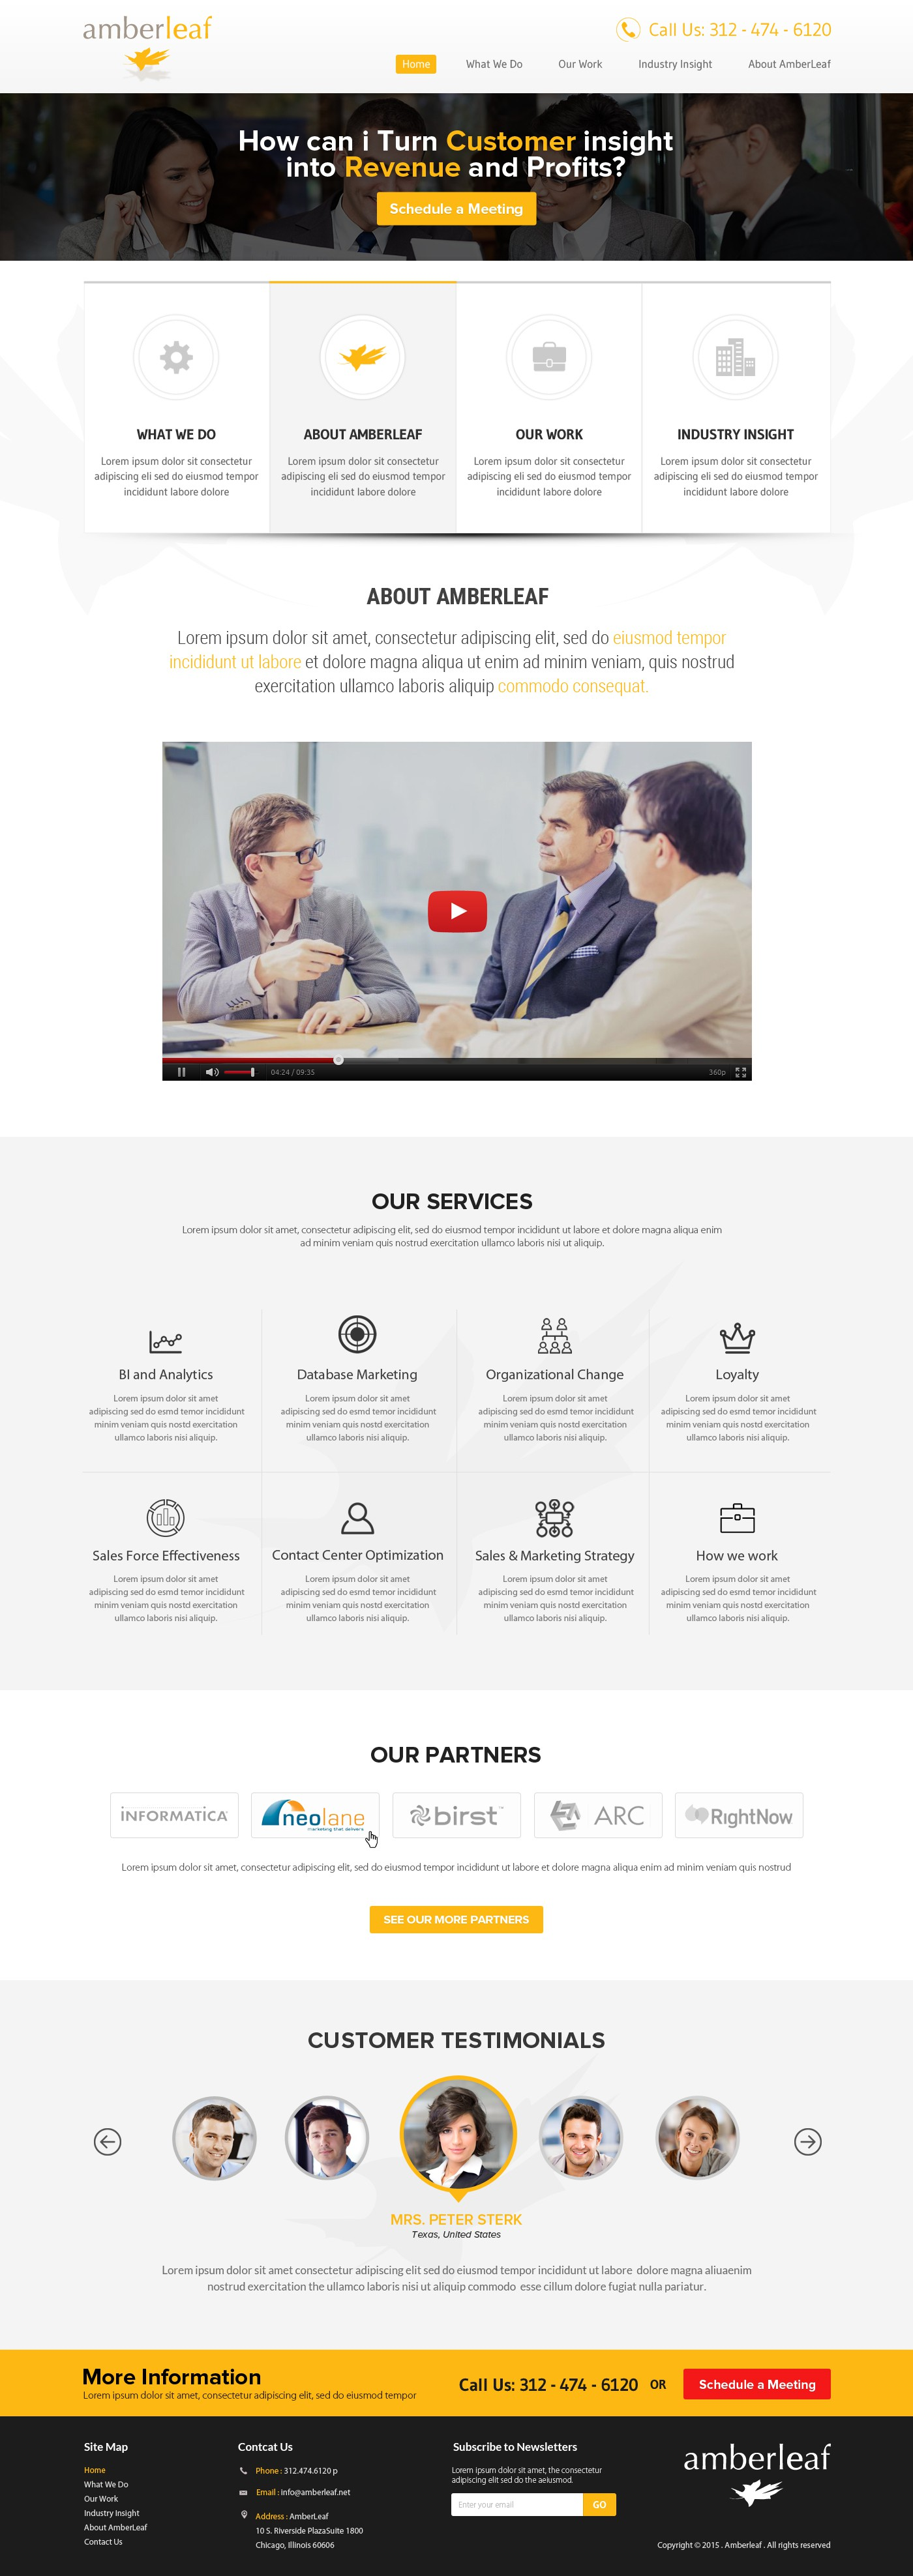 AmberLeaf Web Site (2 Pages) Redesign (no logo)